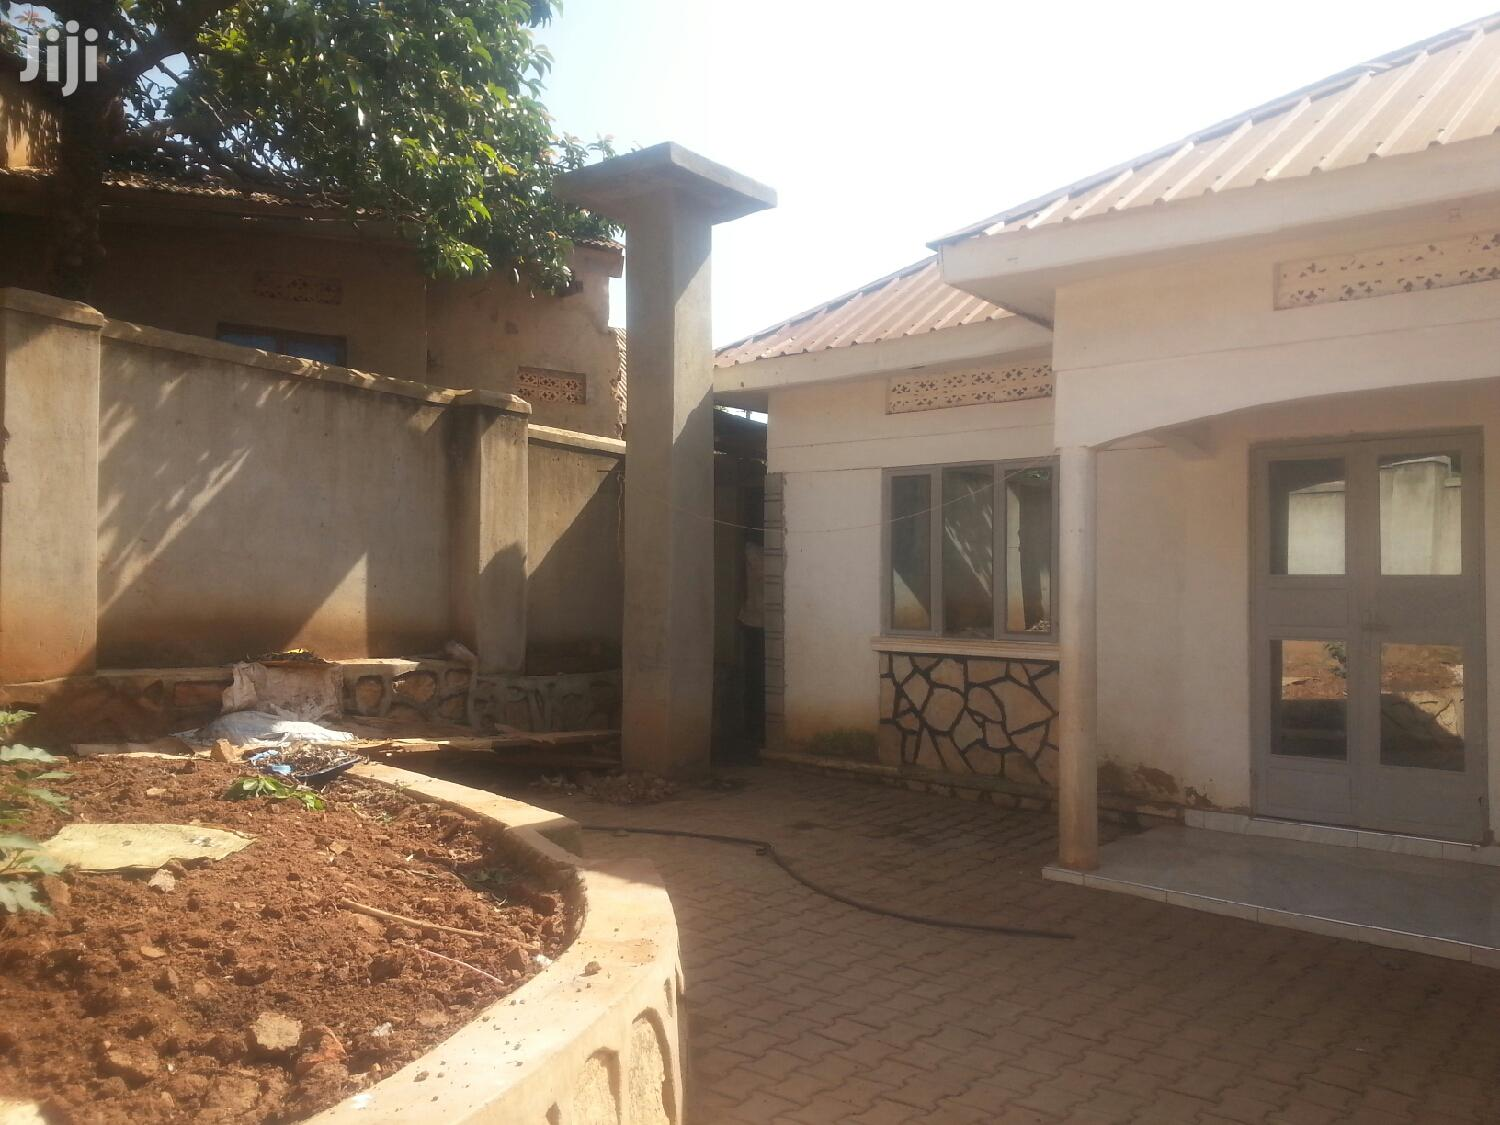 House For Sell With Land Tittle In Gayaza Bulamu On 0.9 Decimals